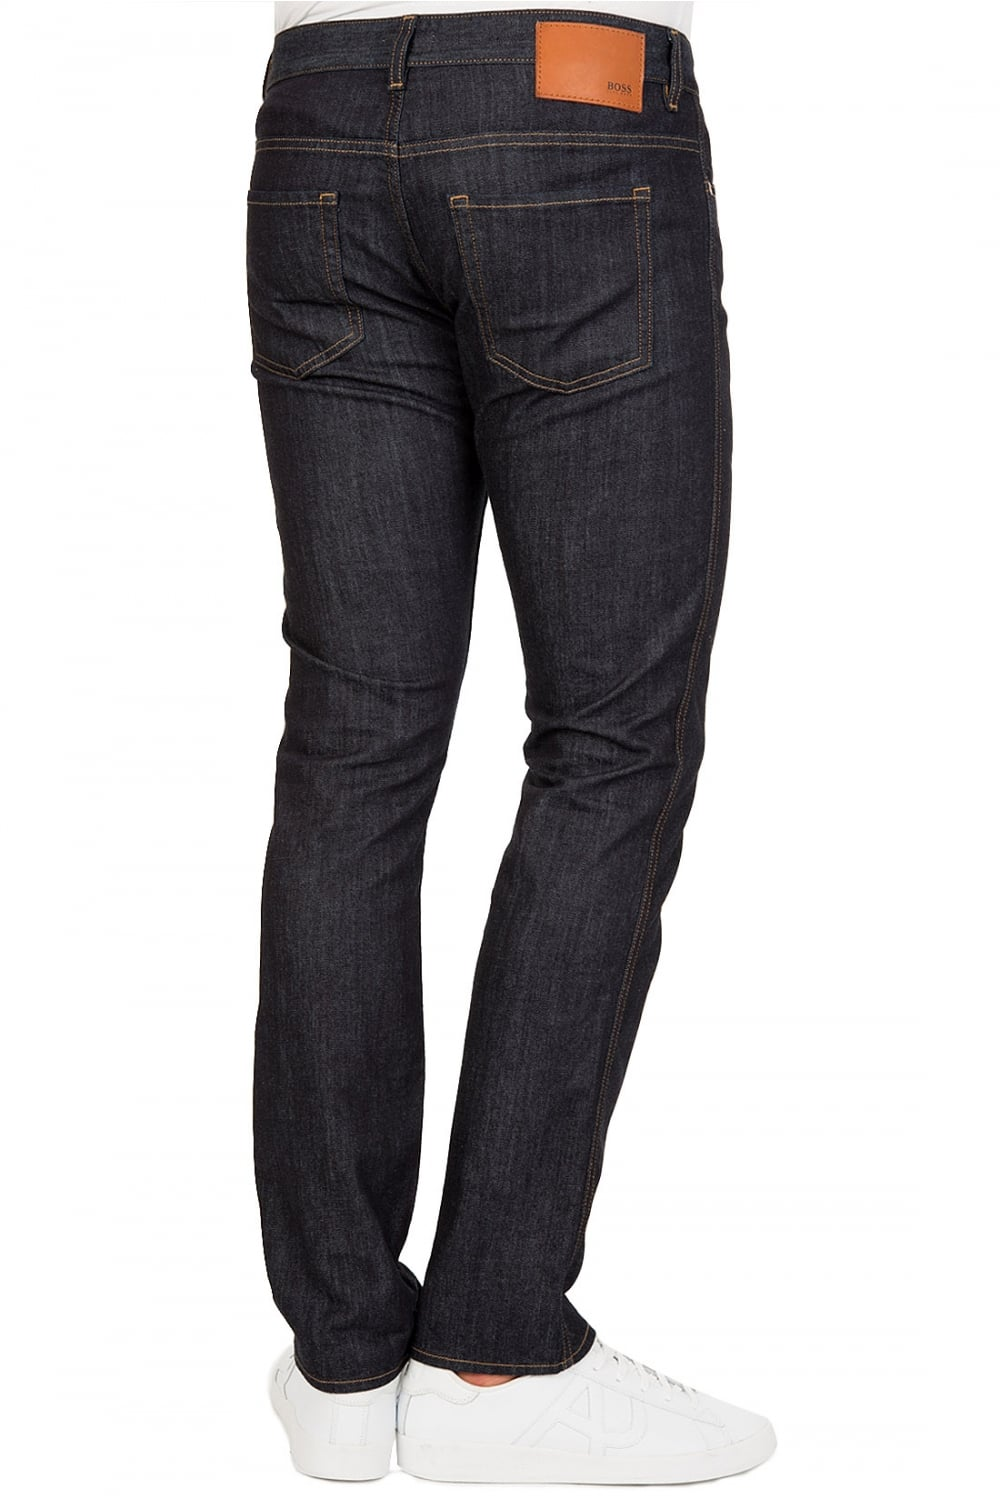 7fae193f BOSS Hugo Boss 'Delaware 1' Slim Fit Jeans - Clothing from Circle ...